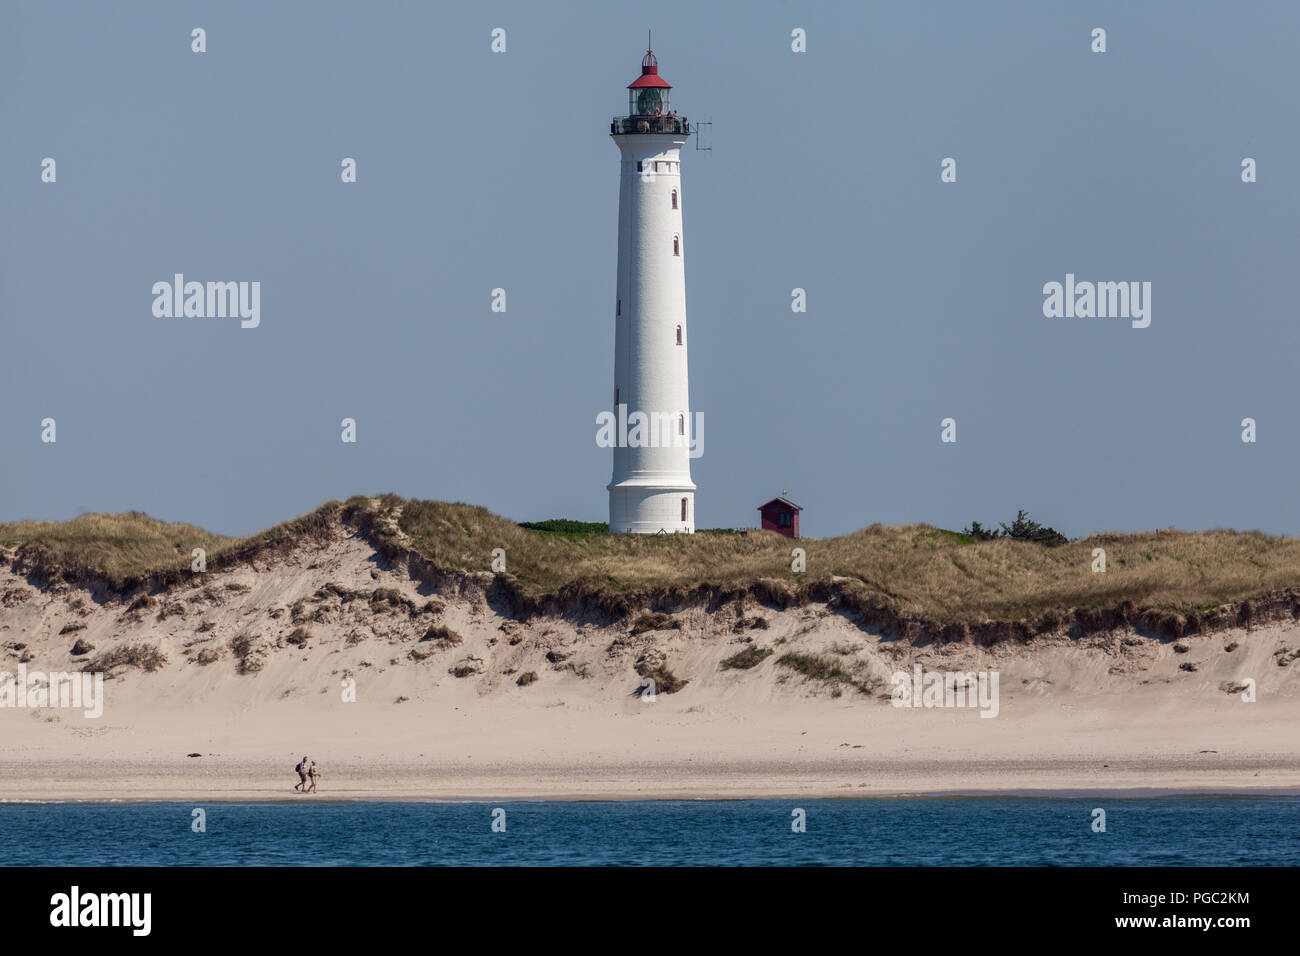 A couple walking on the beach as people stand on Lyngvig Lighthouse (Lyngvig Fyr) on the west coast of Jutland coast in Denmark. The lighthouse was built in 1906 and was the last built along this coast. Although no longer used for maritime navigation, it was built following a tragic accident at sea in 1903, where 24 sailors lost their lives. The light was lit for the first time on 3rd November 1906. - Stock Image